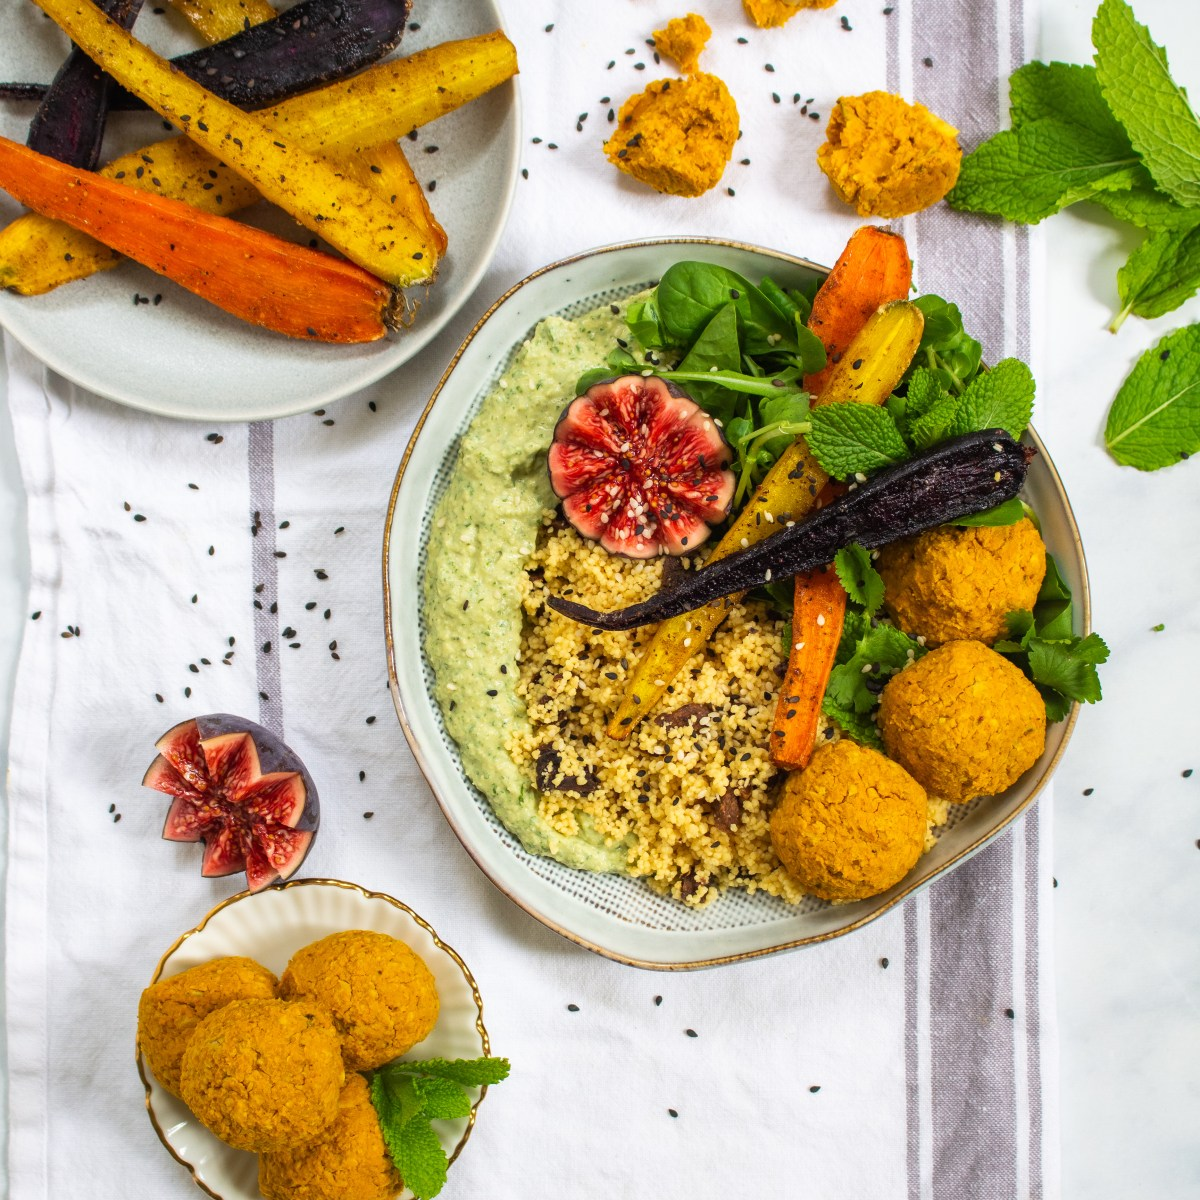 Baked Pumpkin Falafel Bowl with Herby Hummus and Roasted Carrots